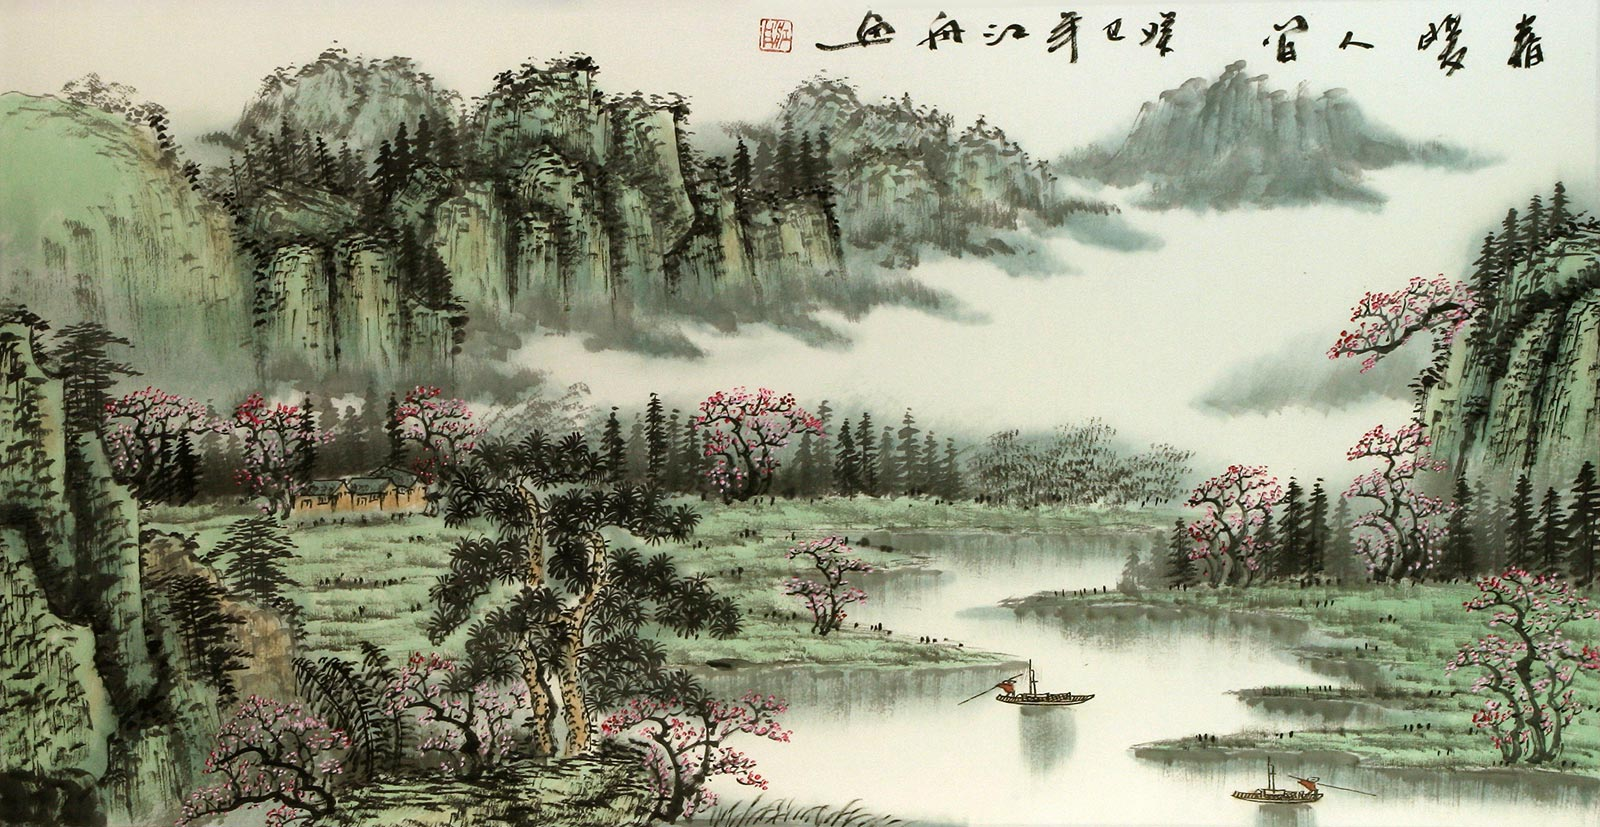 Warmth of Spring Inspires Mankind - Asian Art Landscape